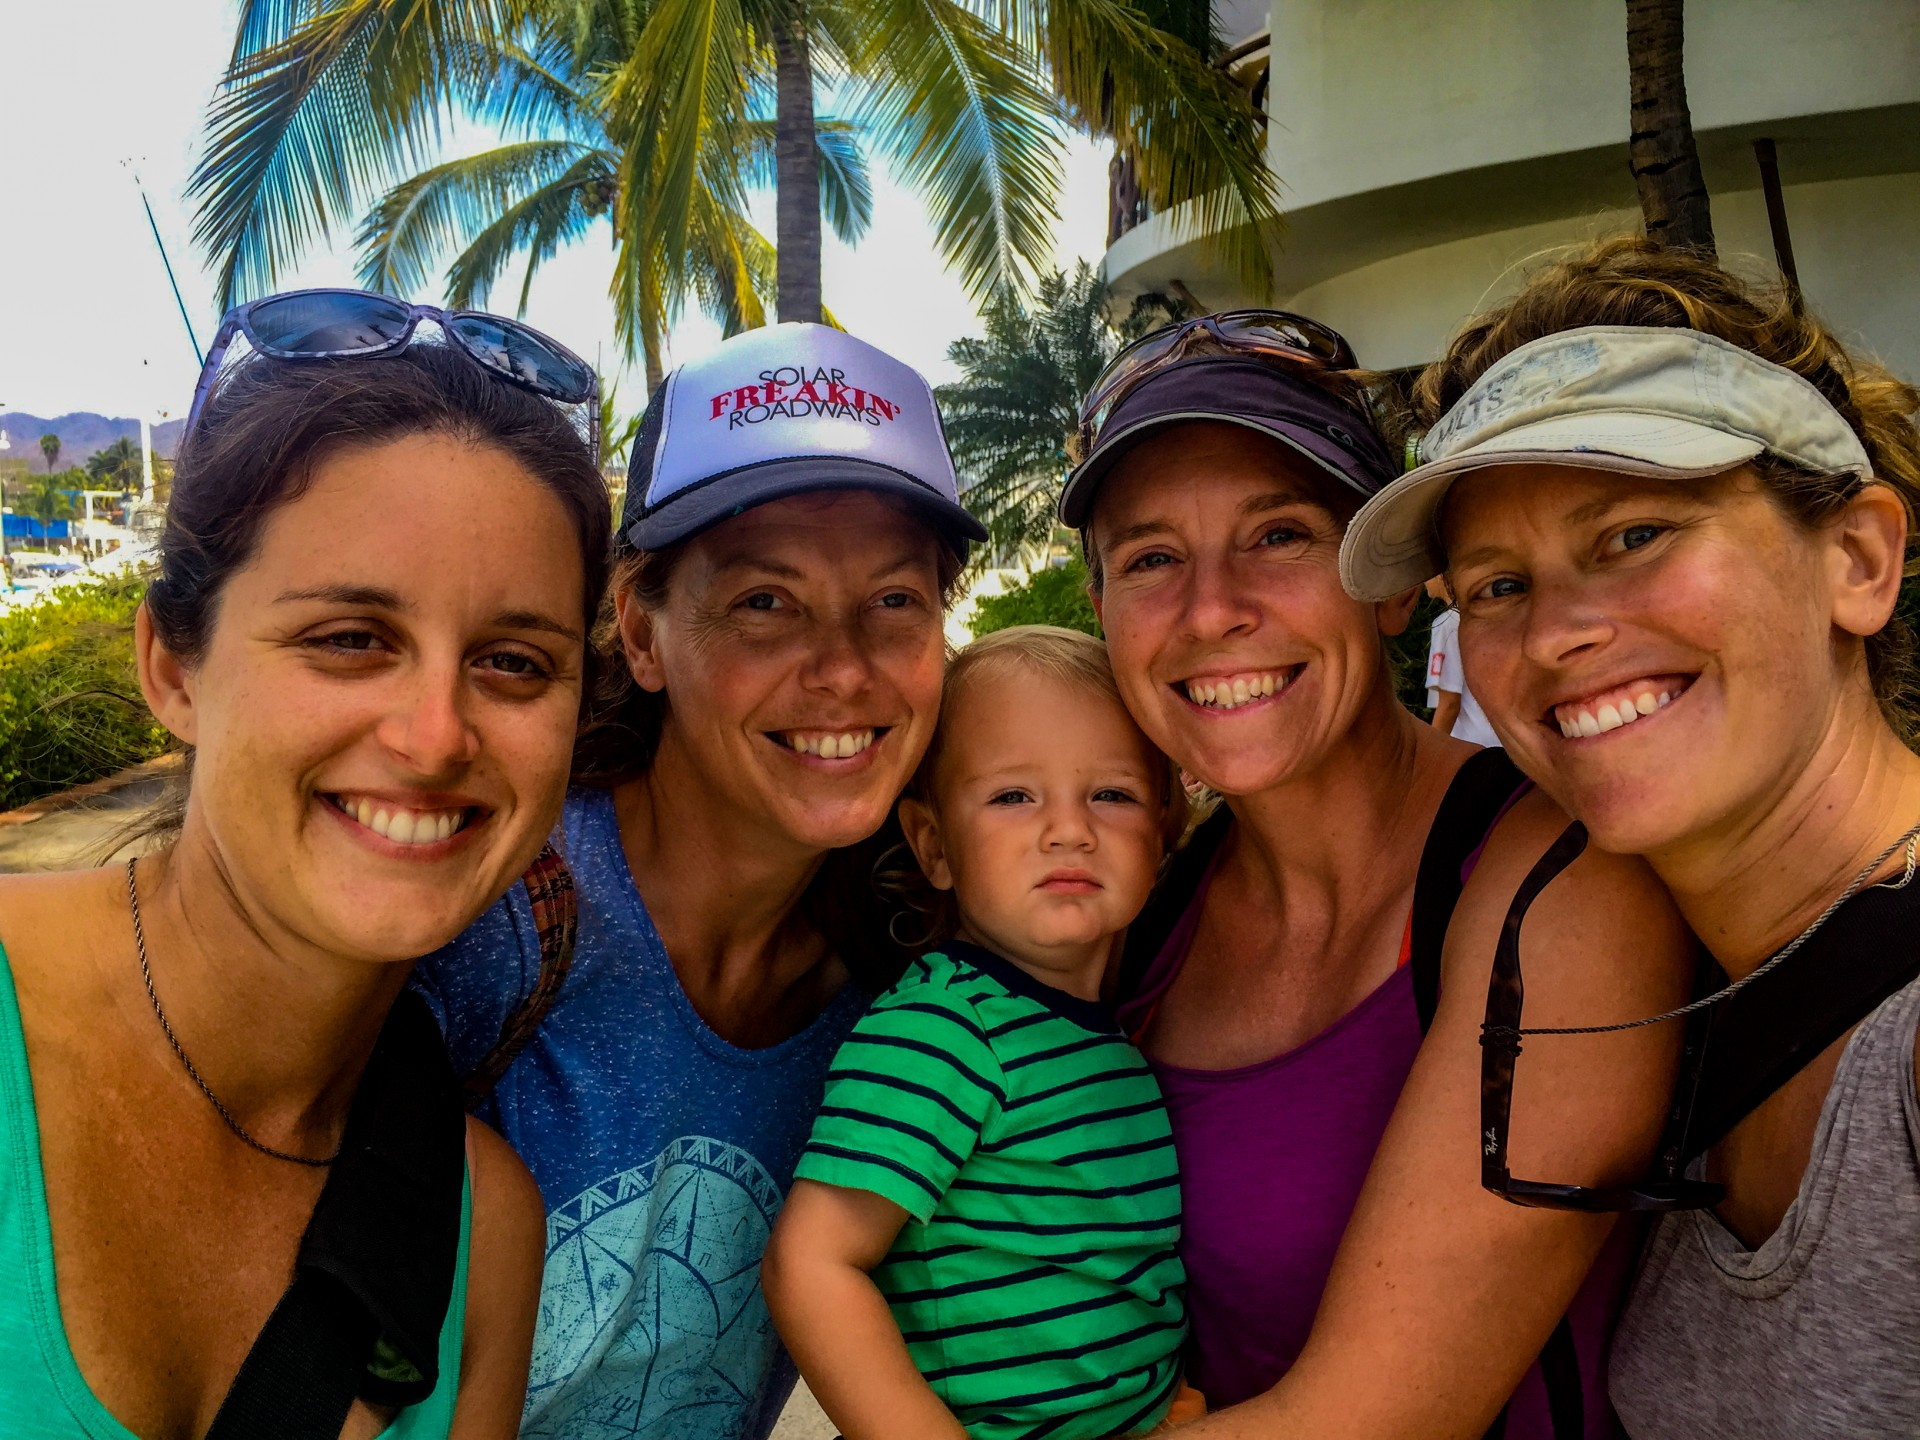 Ladies (and little boy Etolin) of La Cruz.